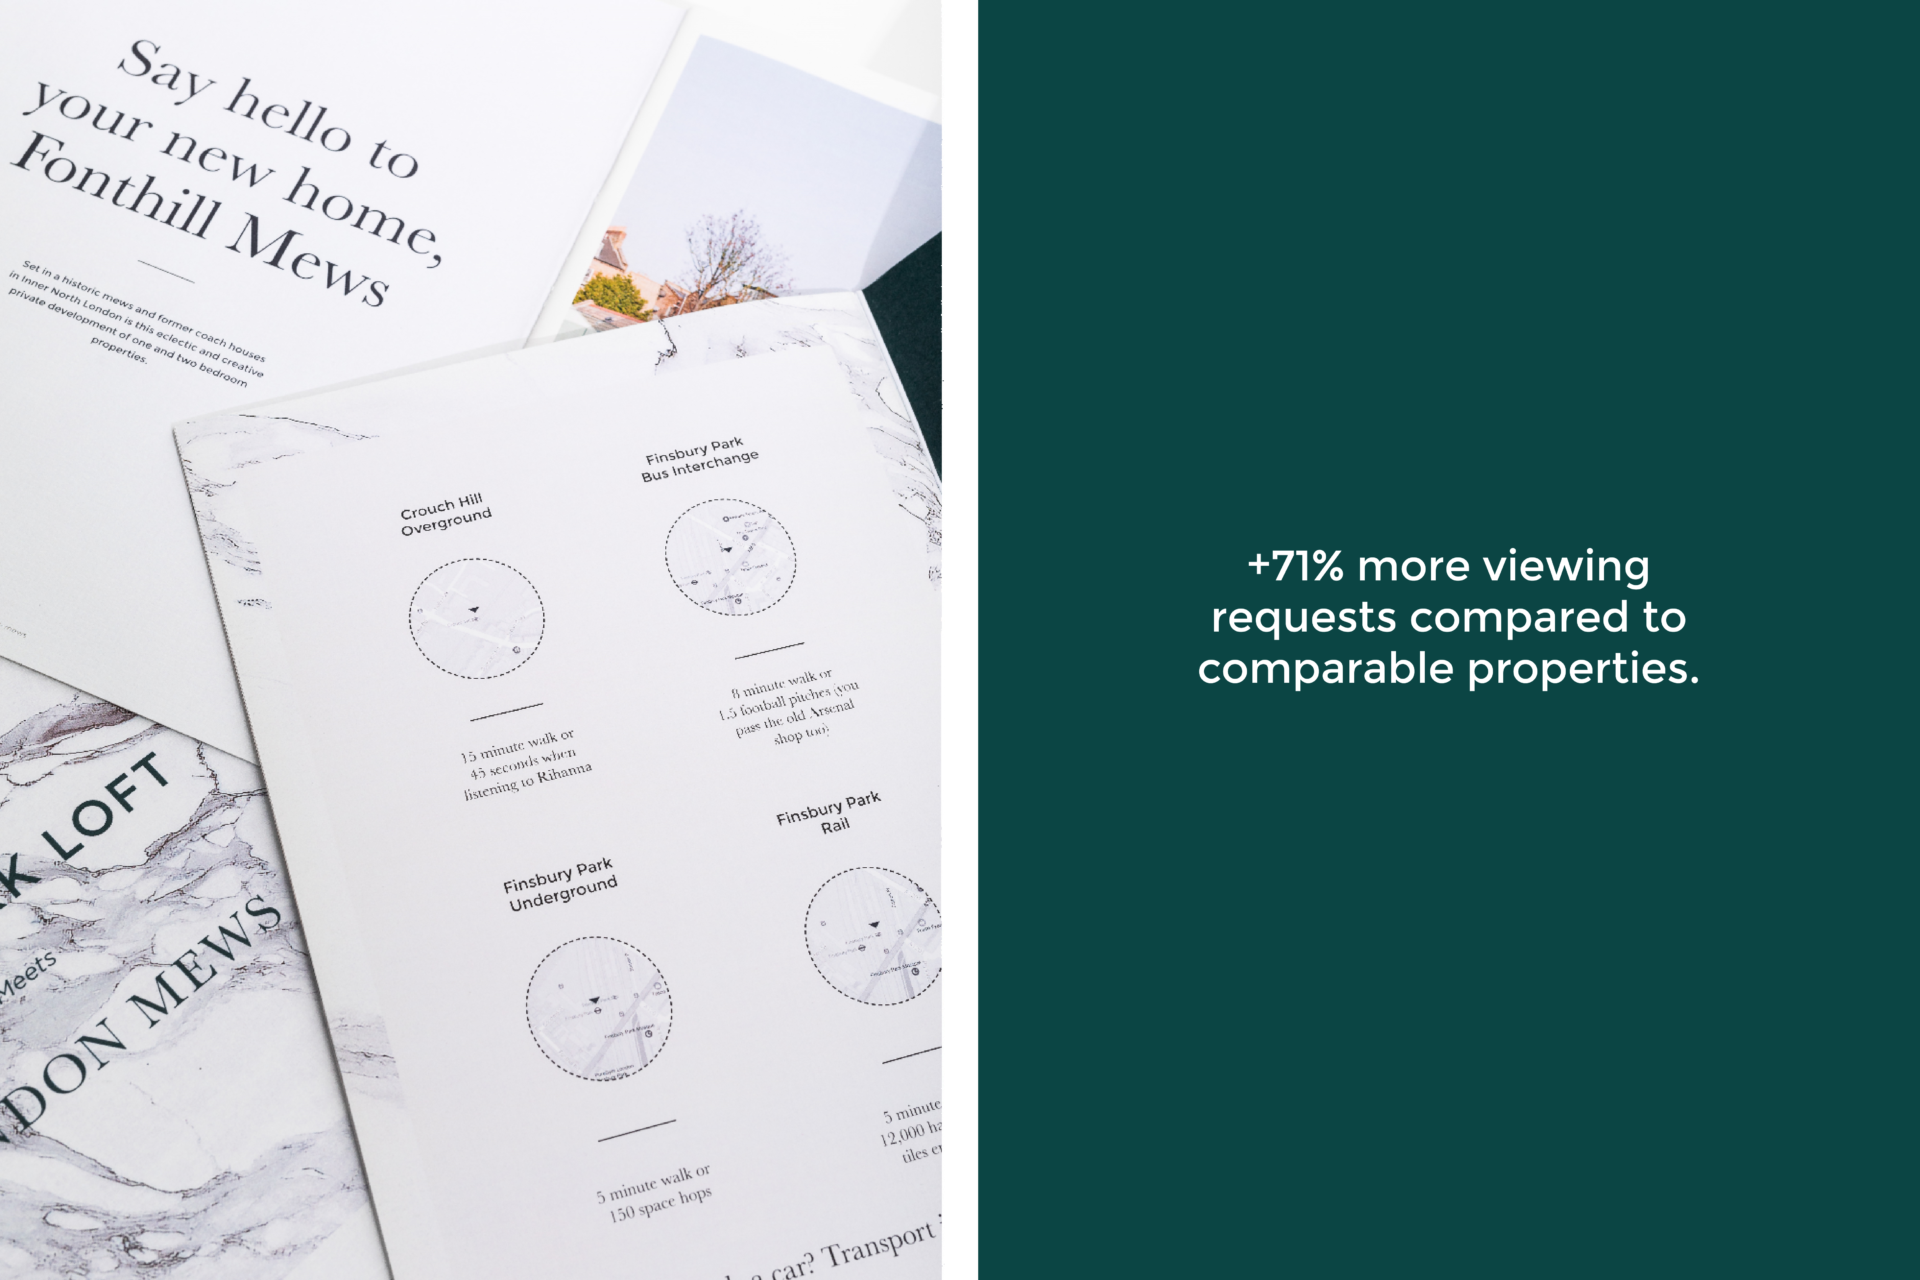 Interior brochures for Fonthill Mews, Finsbury Park properties. Graphic design by Barefaced Studios, design agency based in Islington, North London.